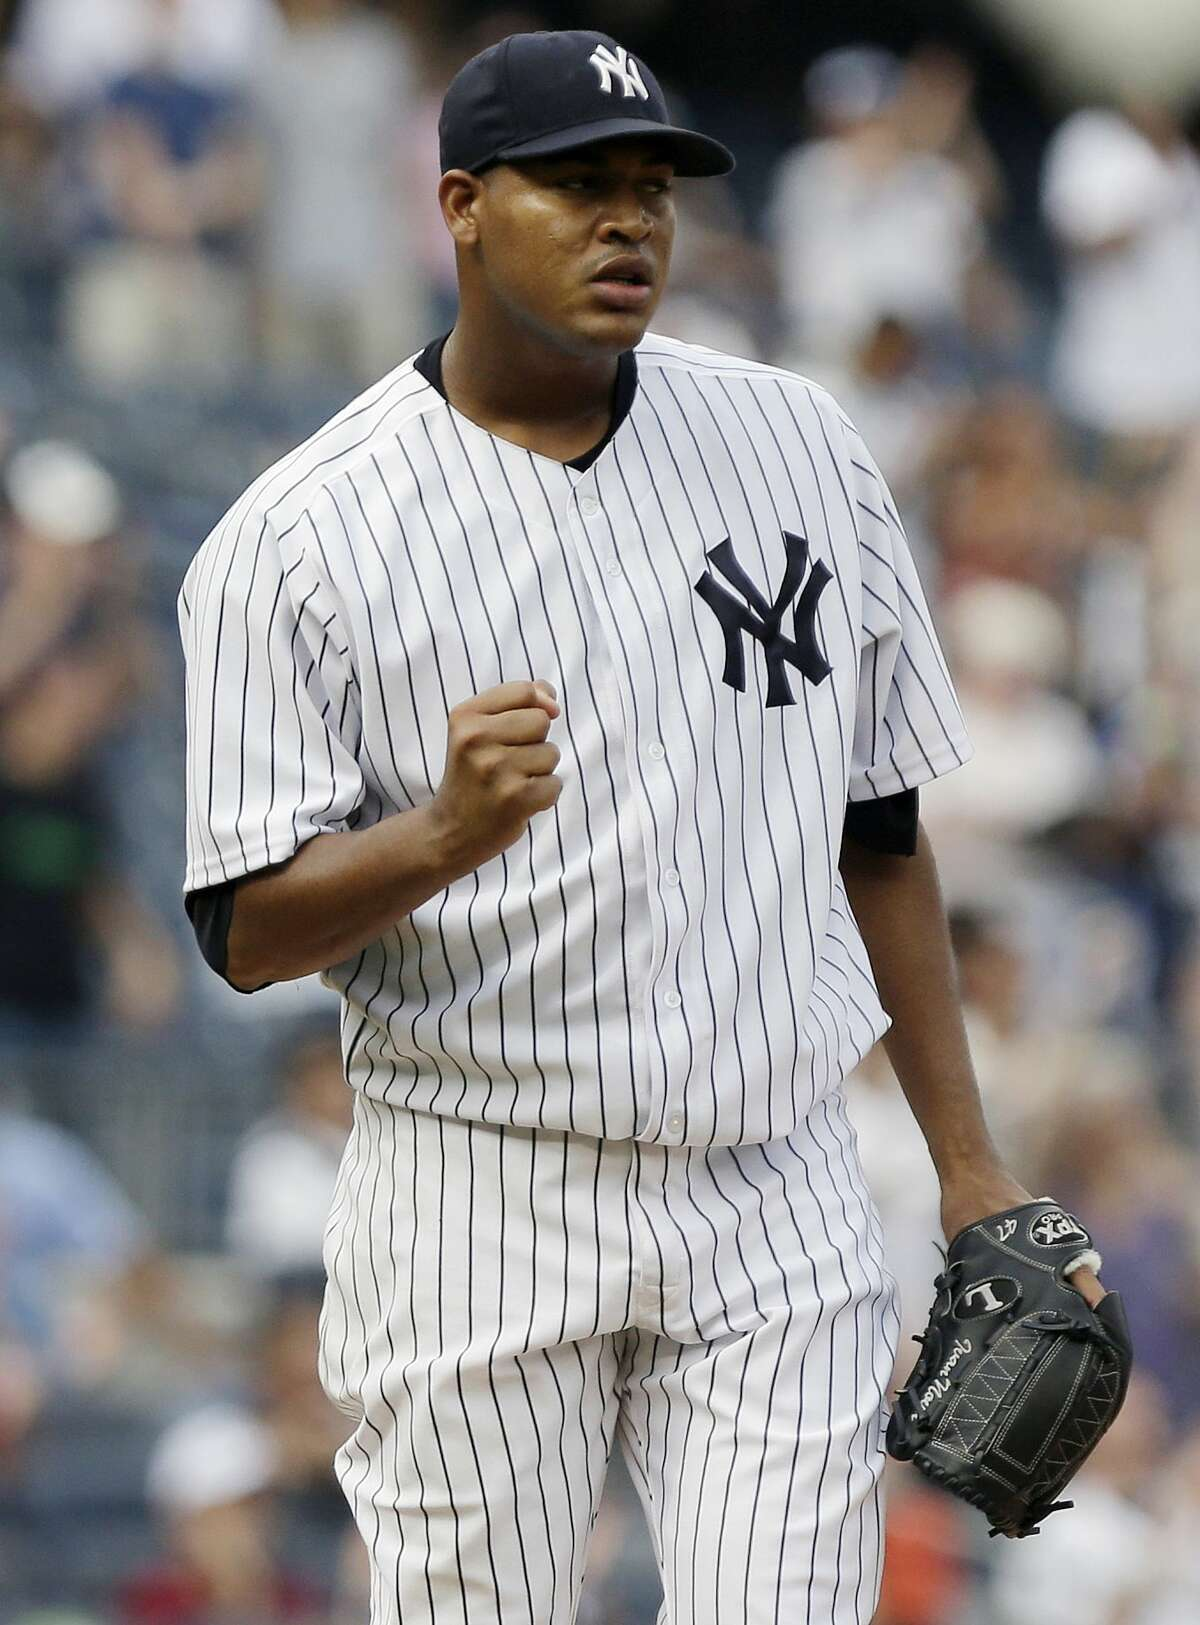 New York Yankees starter Ivan Nova says his surgically repaired elbow feels great.